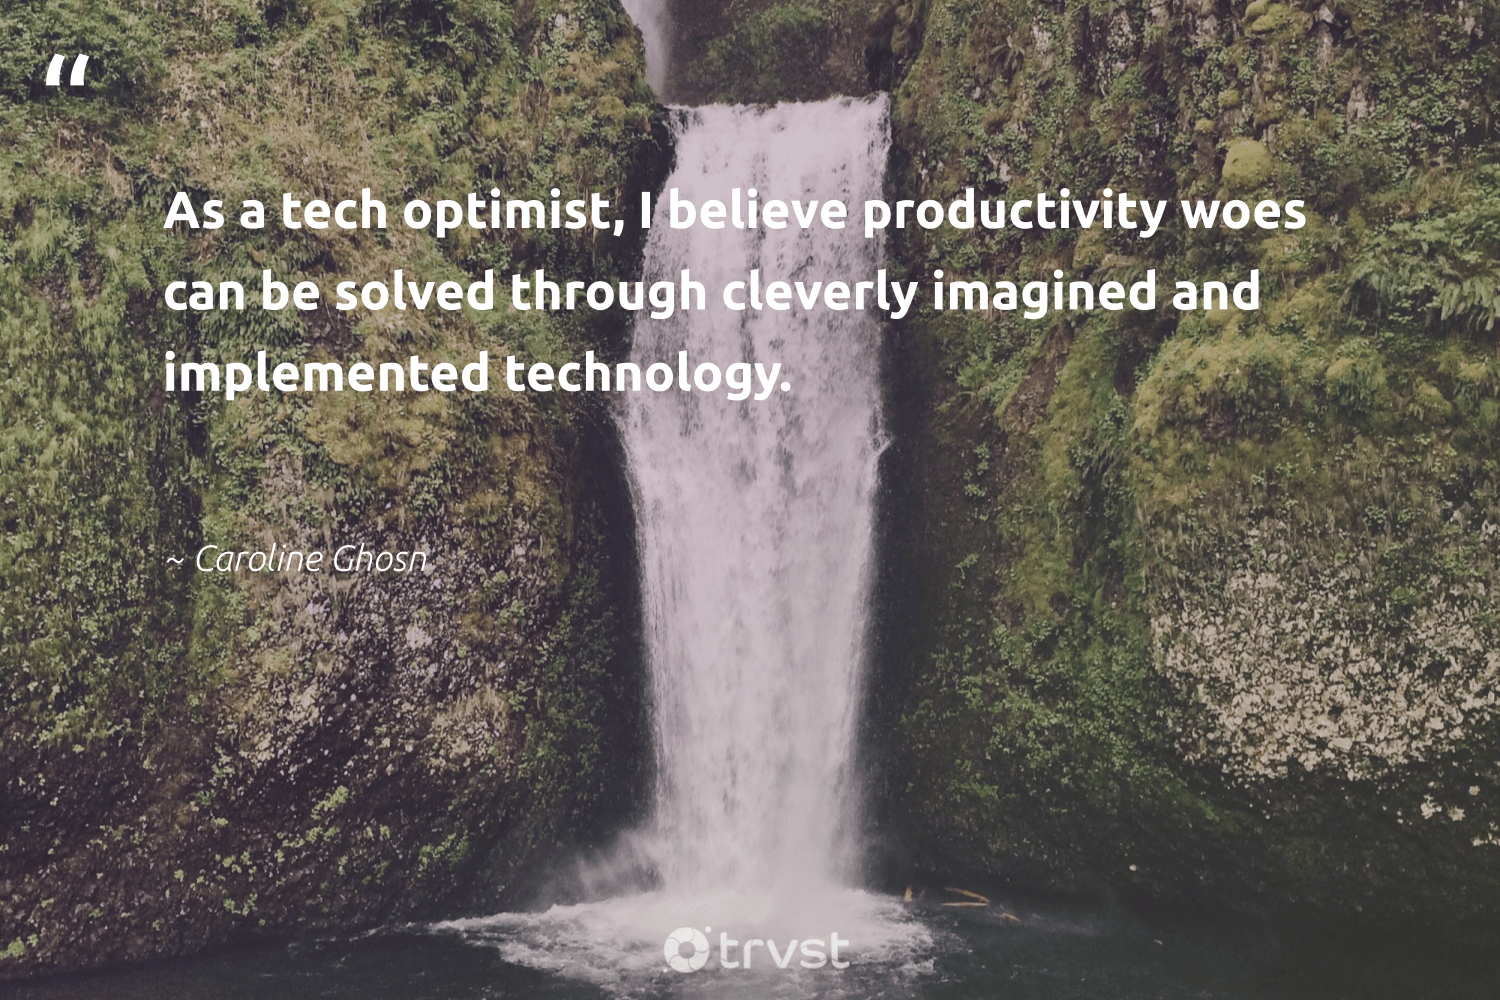 """""""As a tech optimist, I believe productivity woes can be solved through cleverly imagined and implemented technology.""""  - Caroline Ghosn #trvst #quotes #productivity #motivation #futureofwork #begreat #bethechange #goals #nevergiveup #softskills #takeaction #focus"""